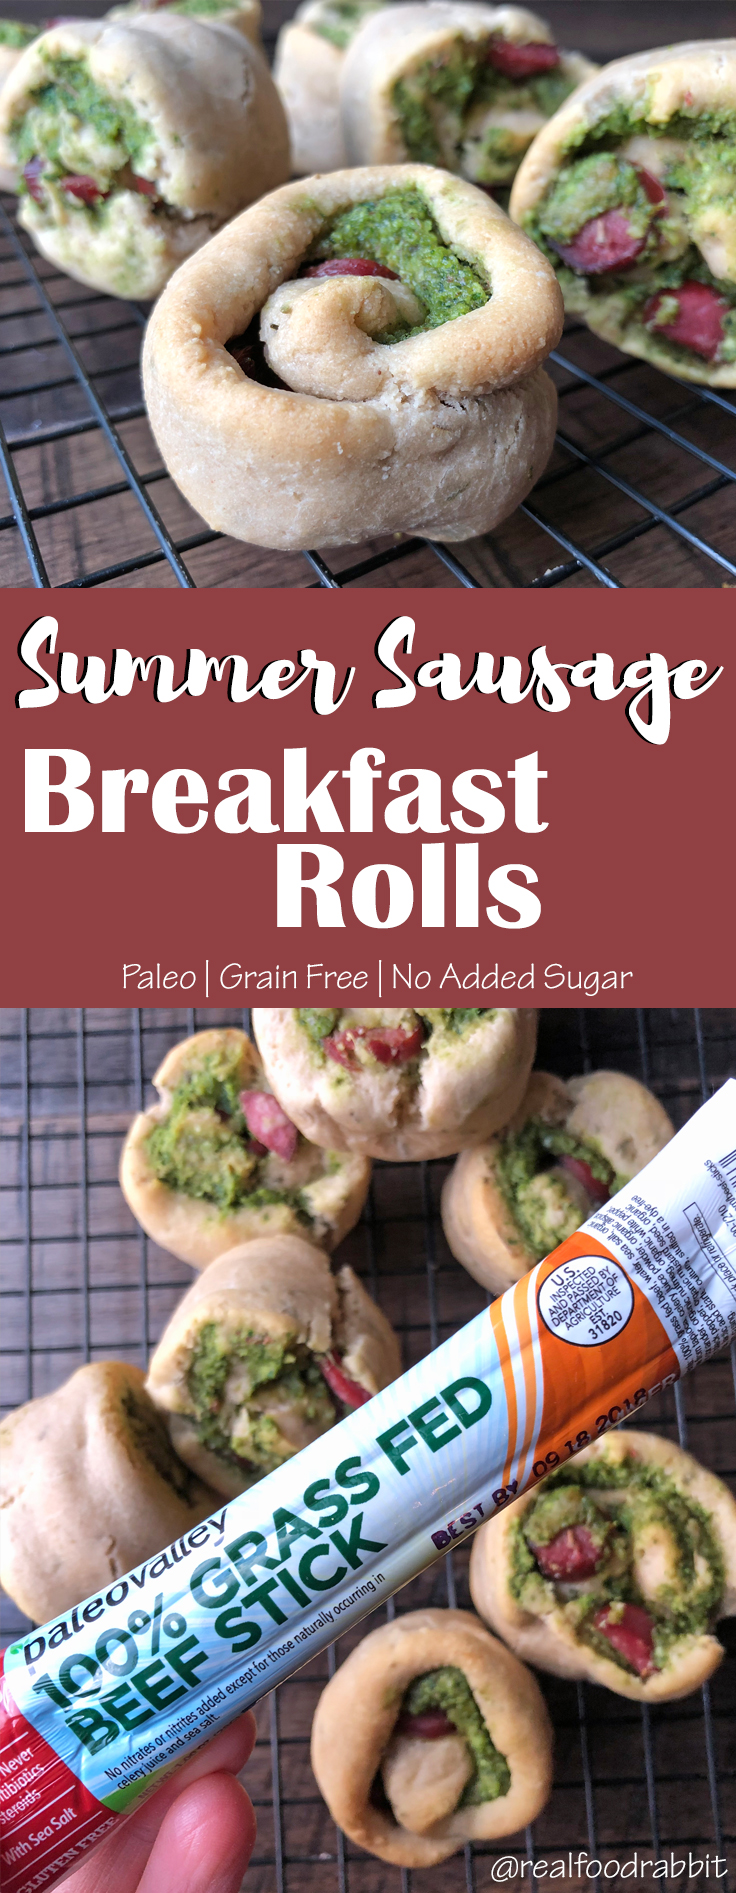 Summer Sausage Breakfast Rolls